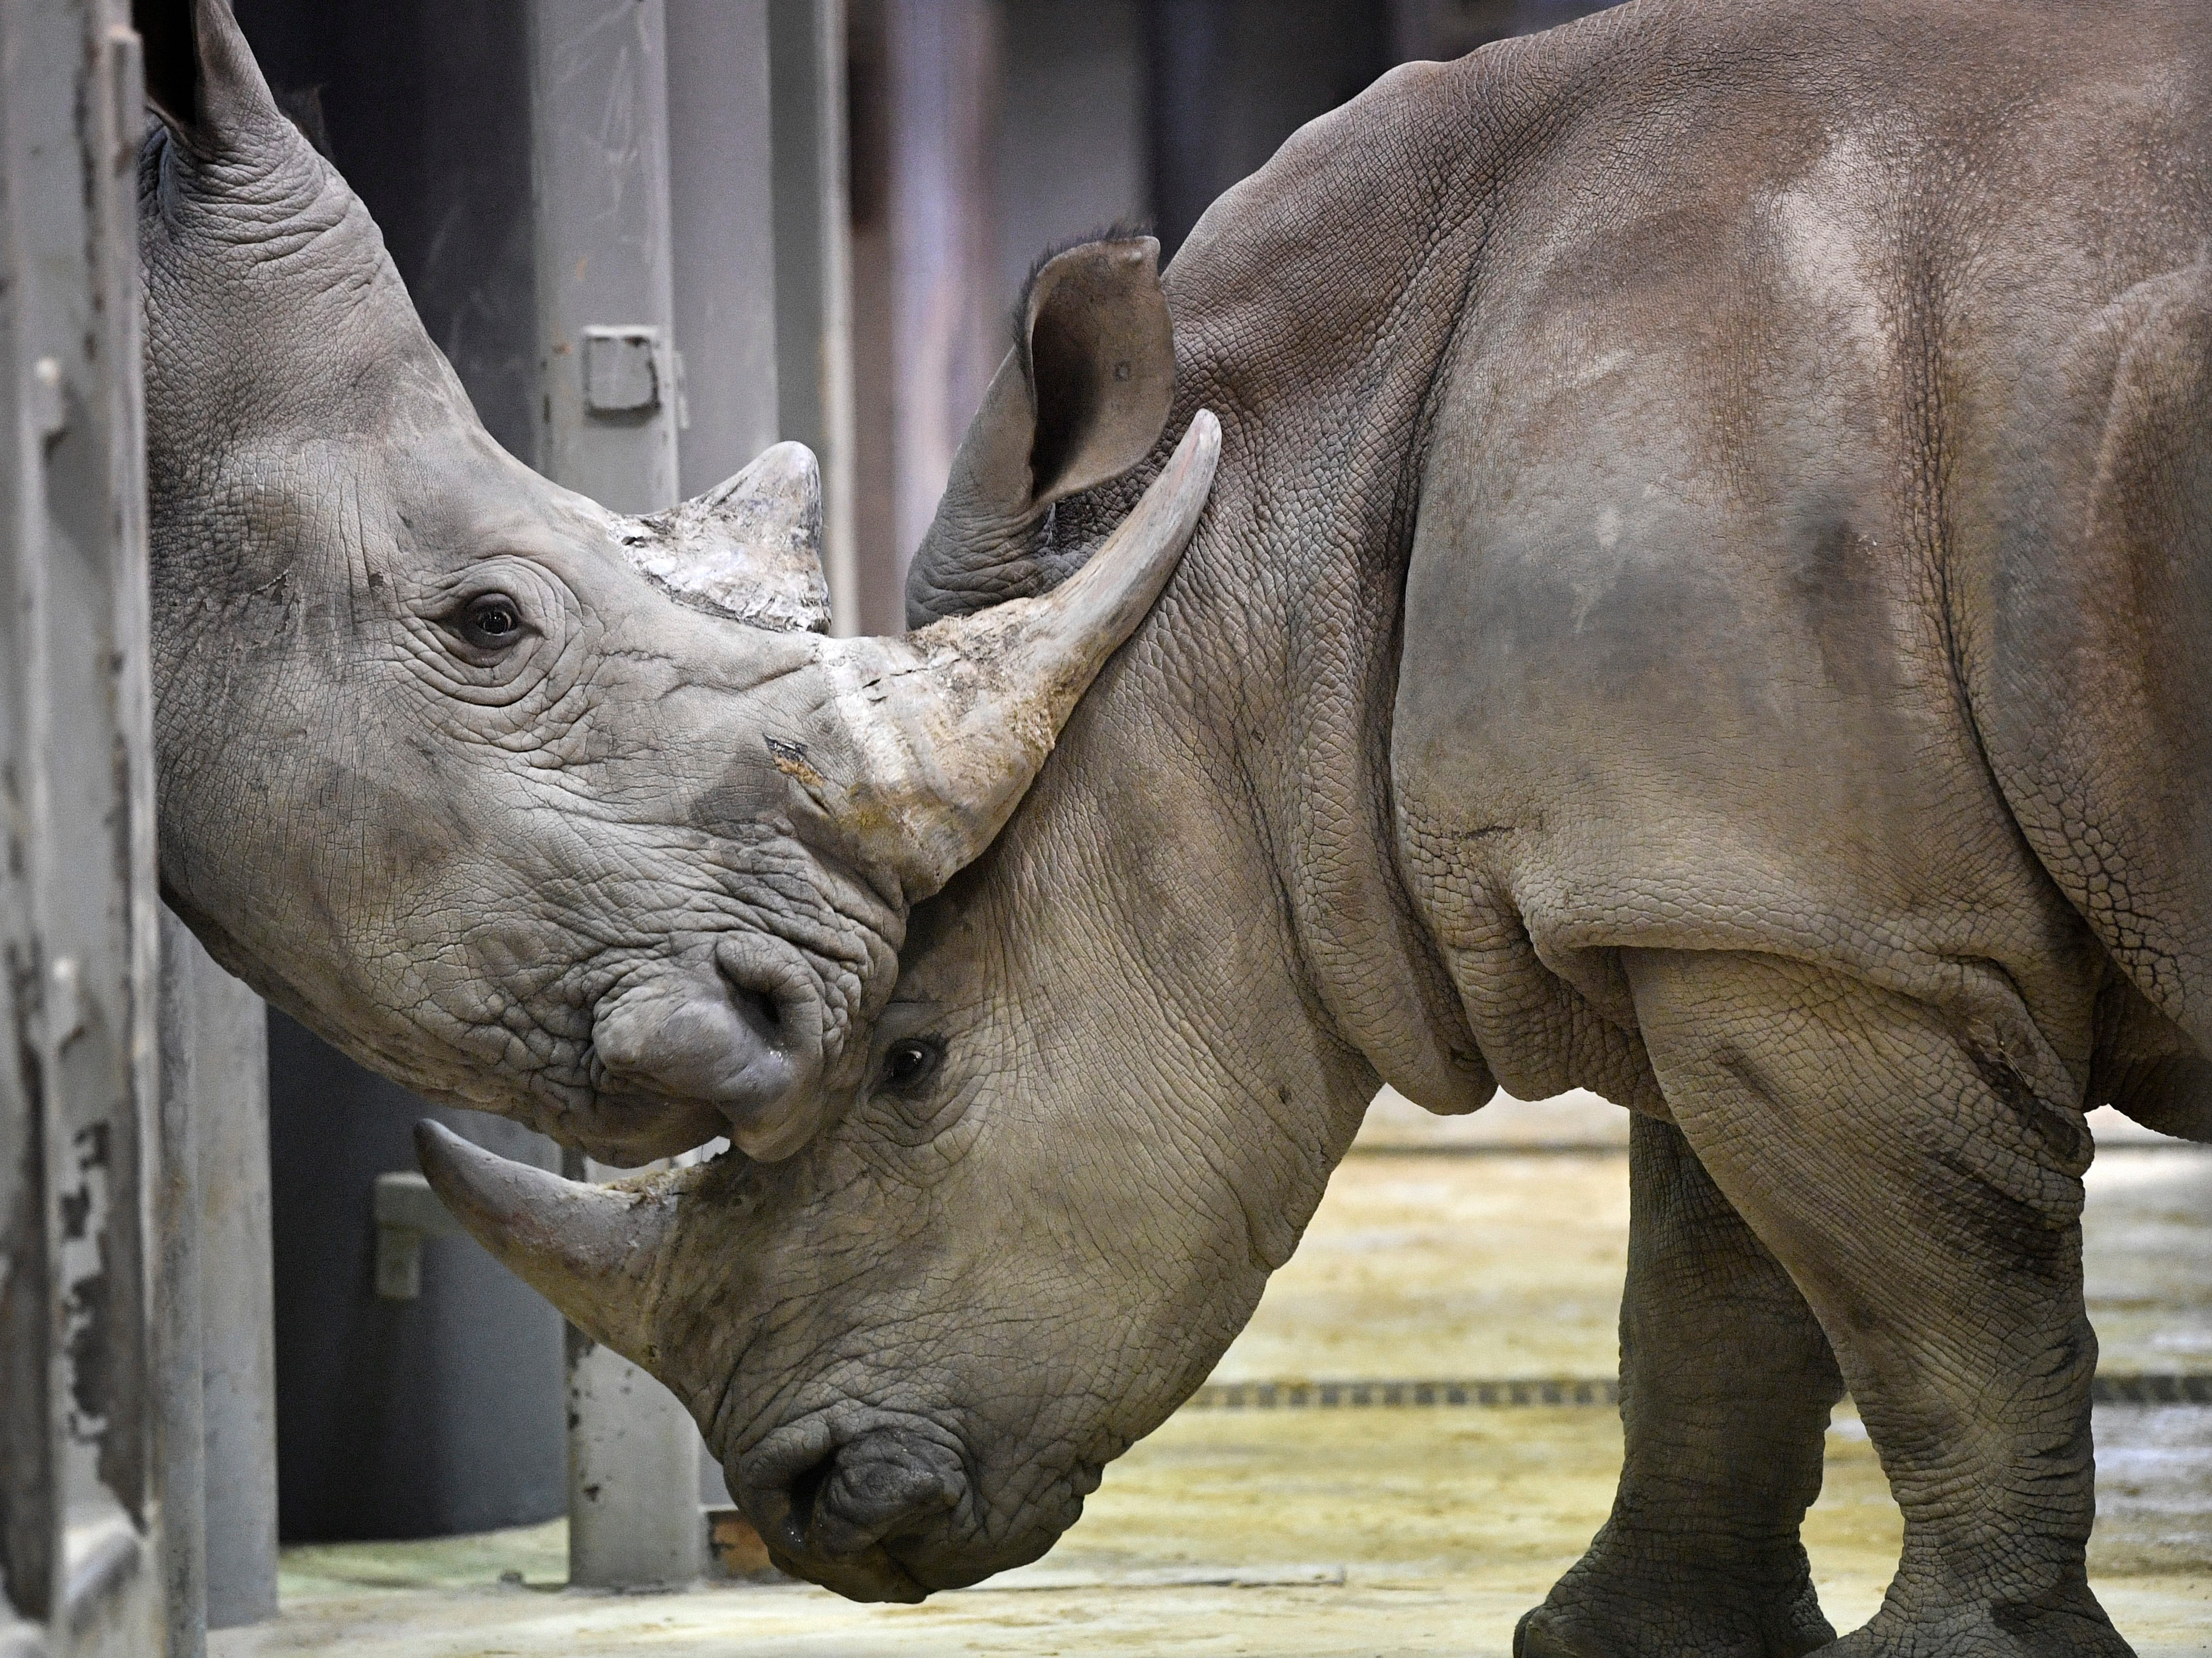 A male White Rhino, left, who is new to the Nashville Zoo, meets a female rhino and both become acquainted with each other Thursday, Feb. 7, 2019, in Nashville, Tenn.